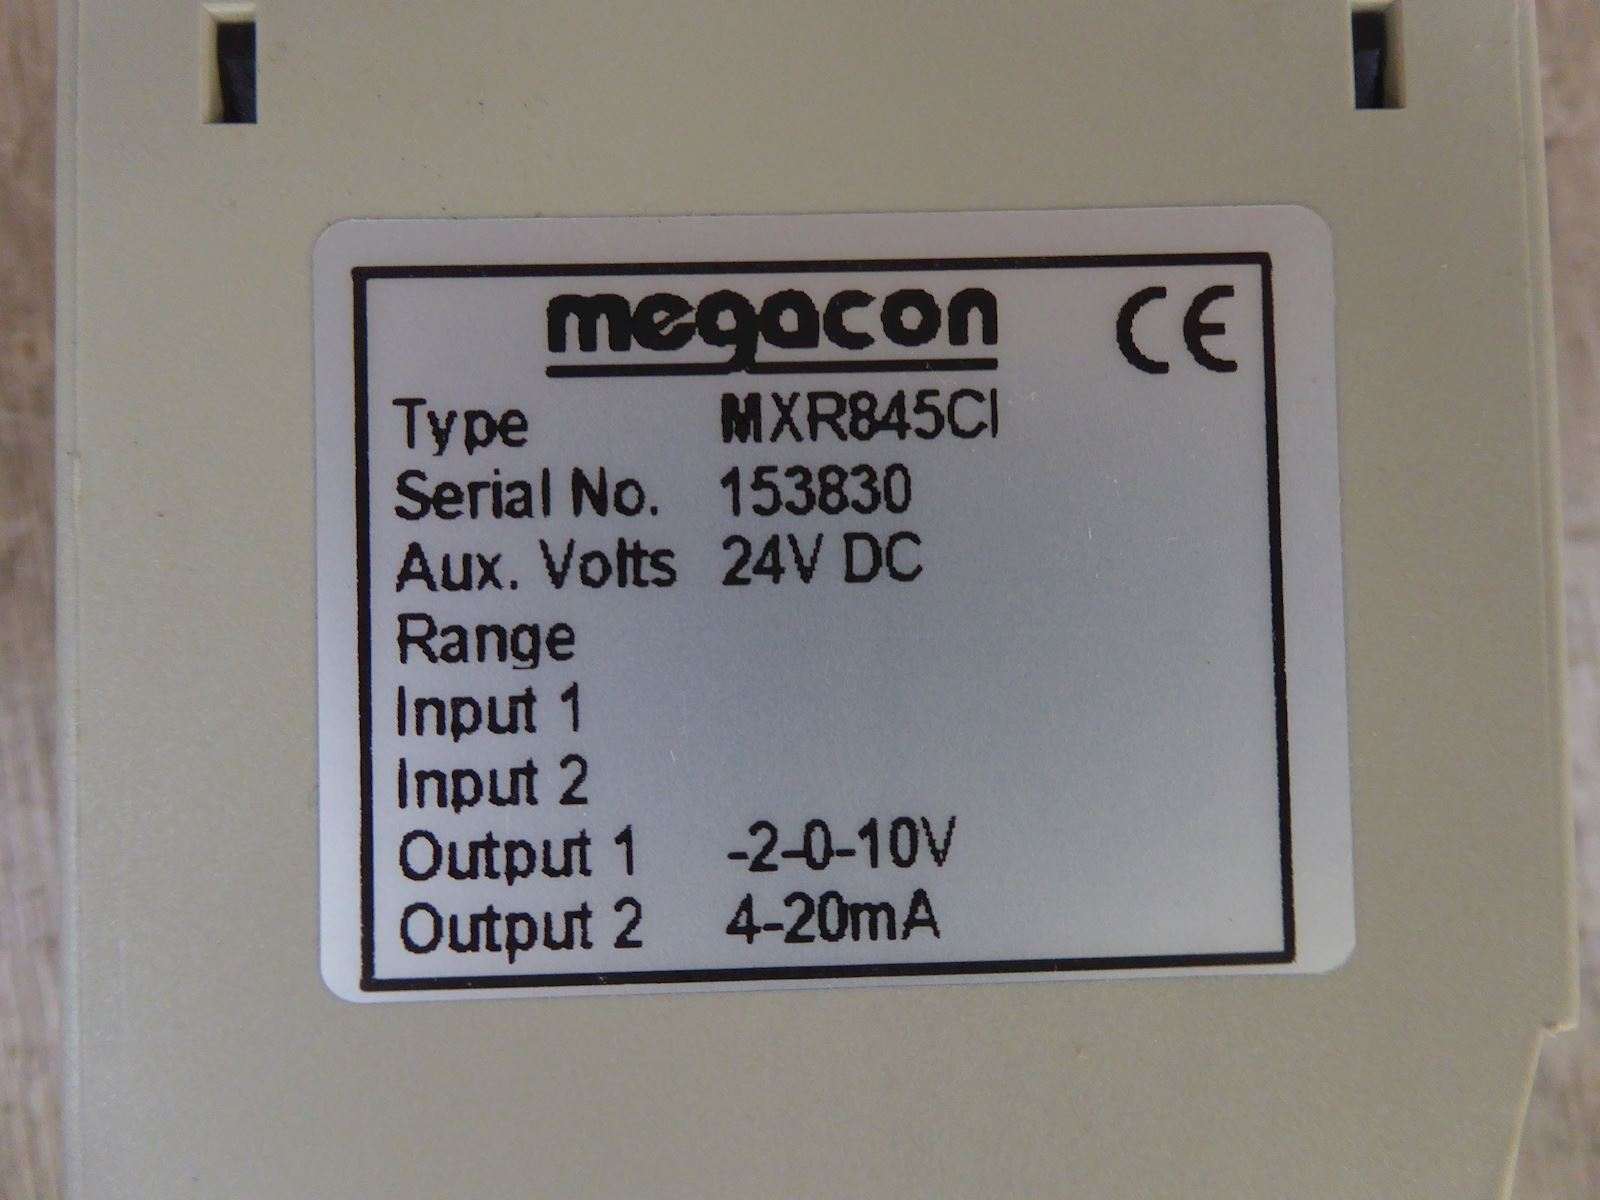 Megacon MXR845Cl